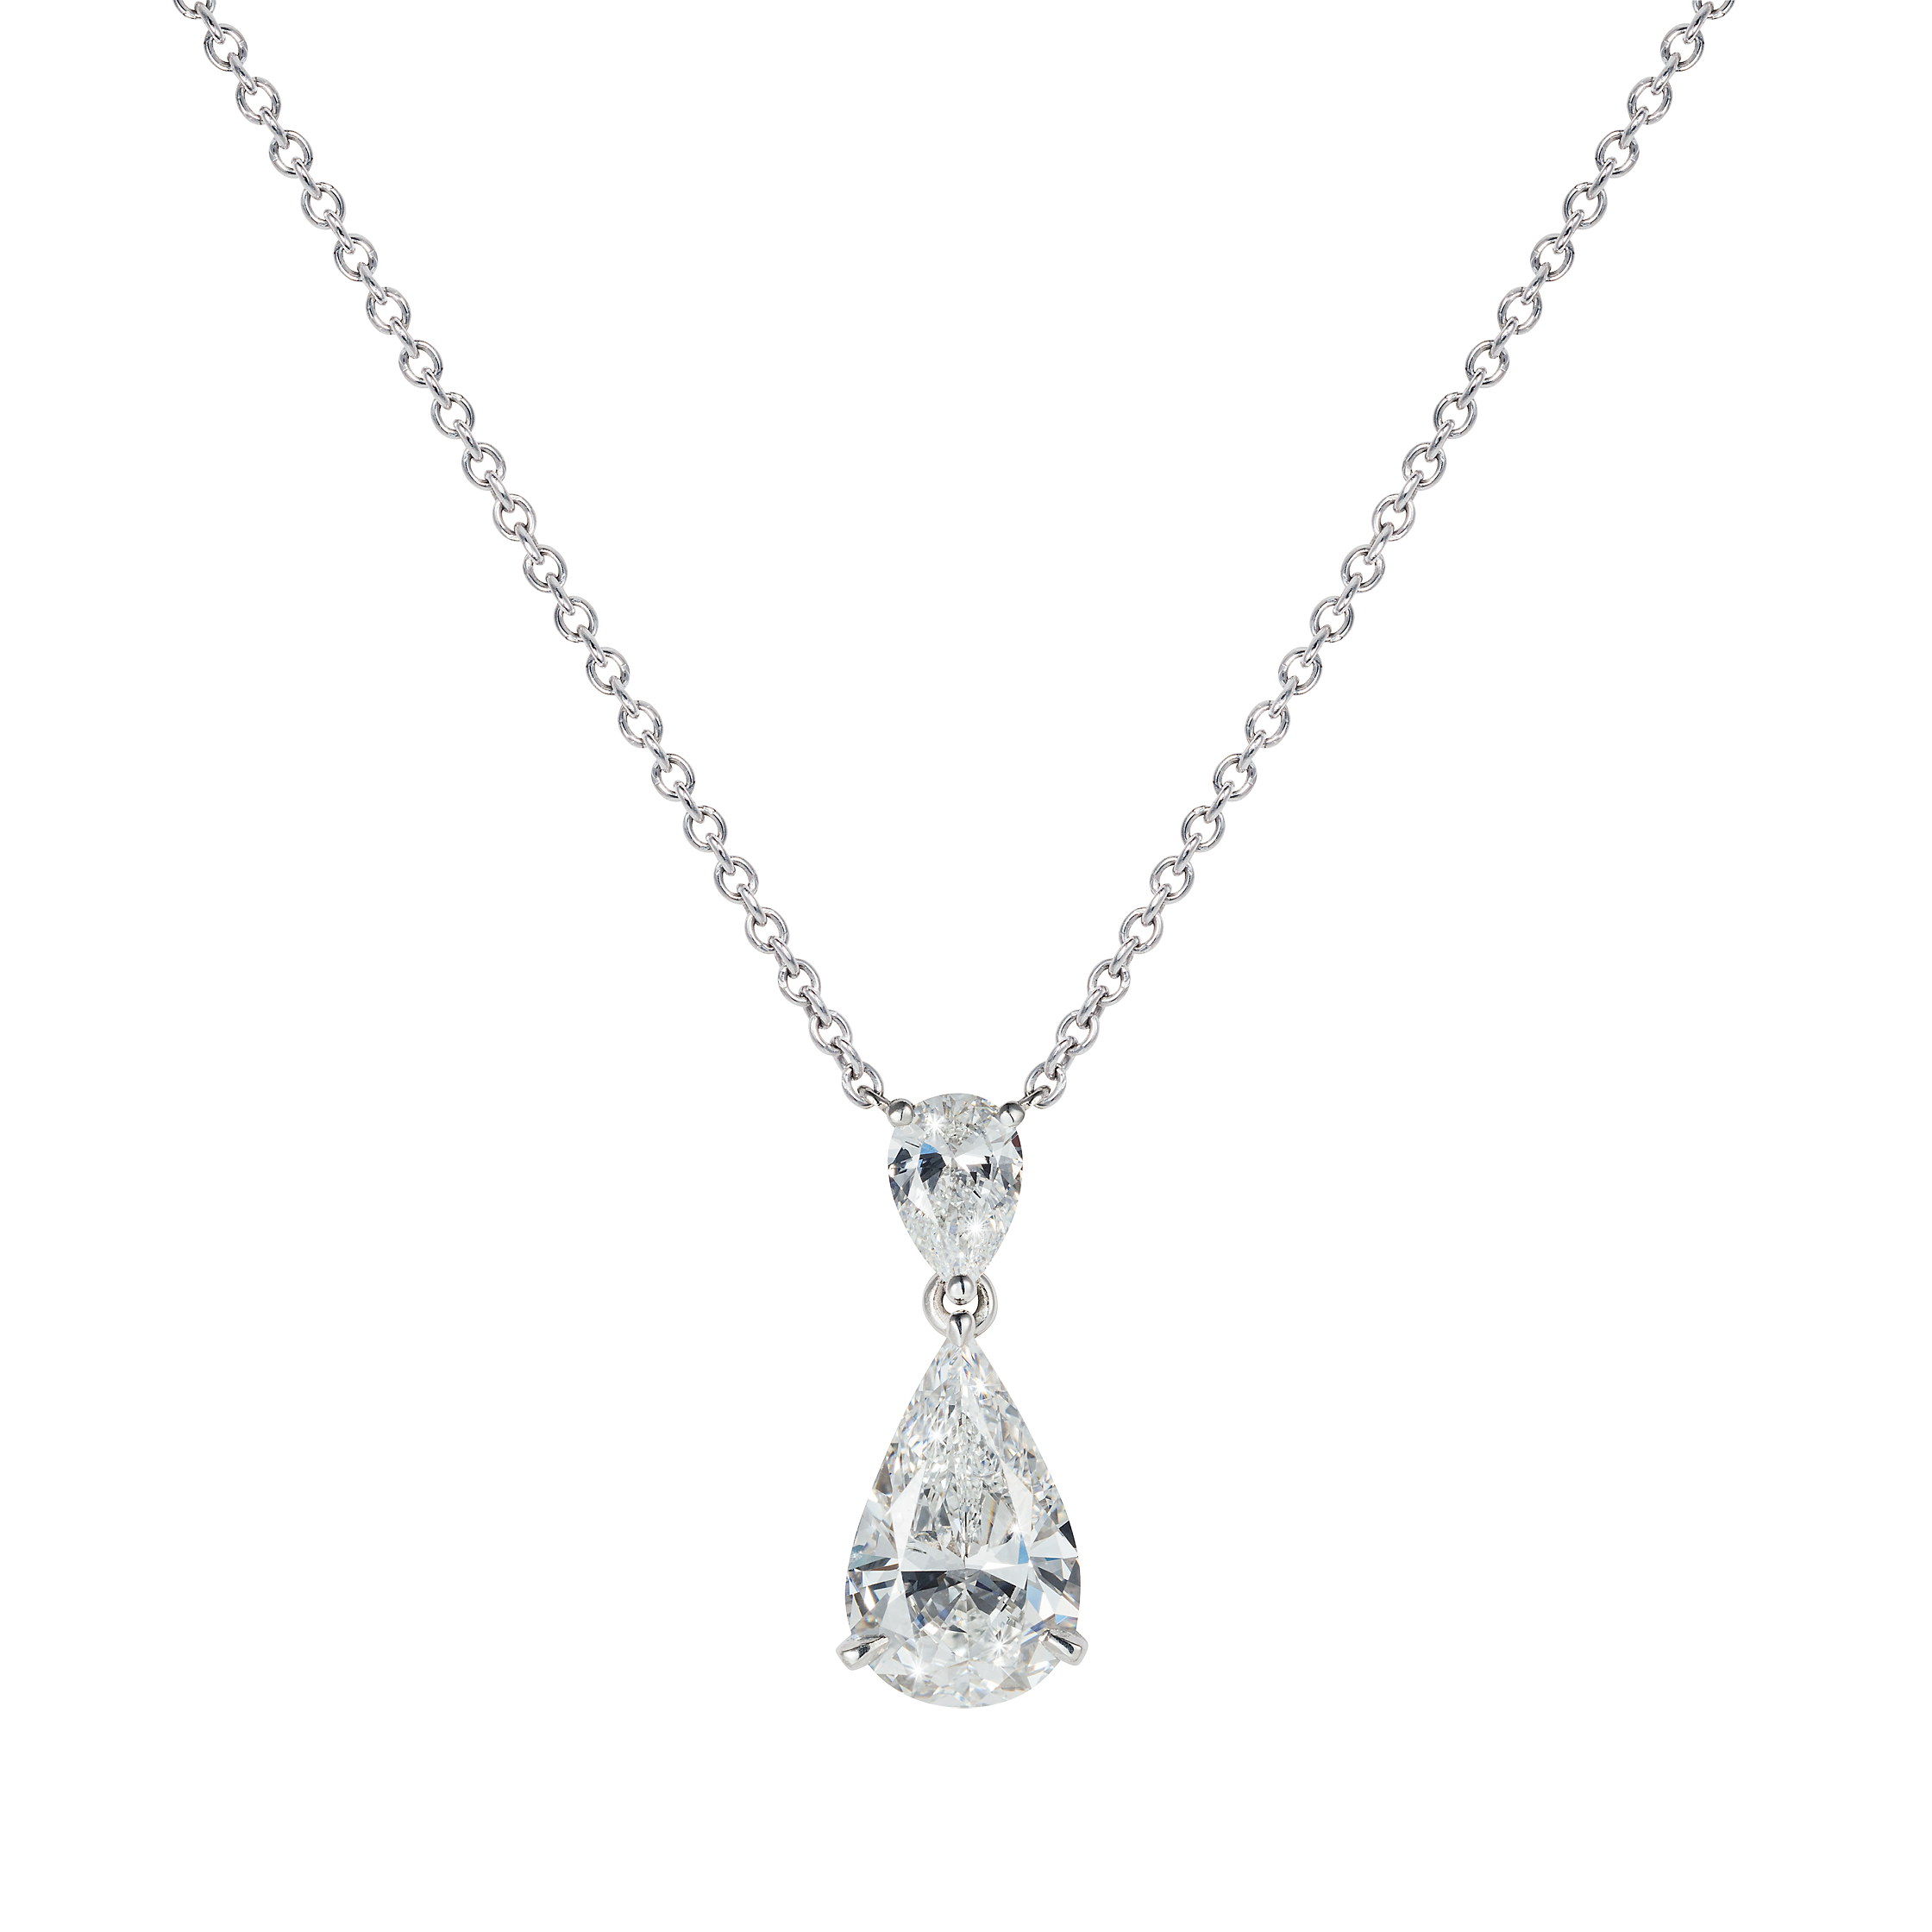 over carat certified j diamond jewelry at pear sale id shaped for necklaces shape gia z pendant